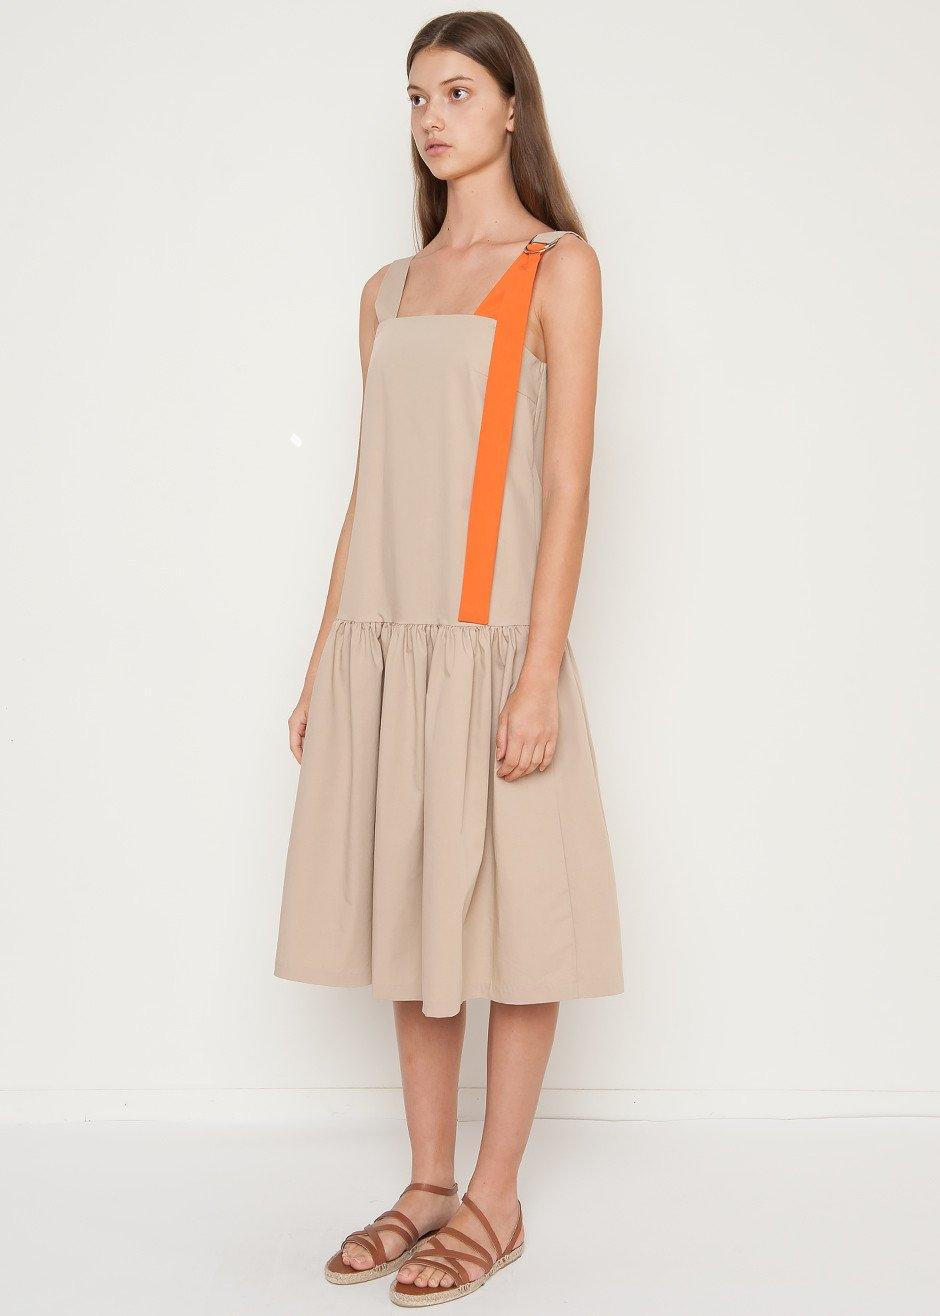 The Frankie Shop  25 Statement-Making Spring Dresses Under $100 The Frankie Shop Khaki 2 Tone Dress